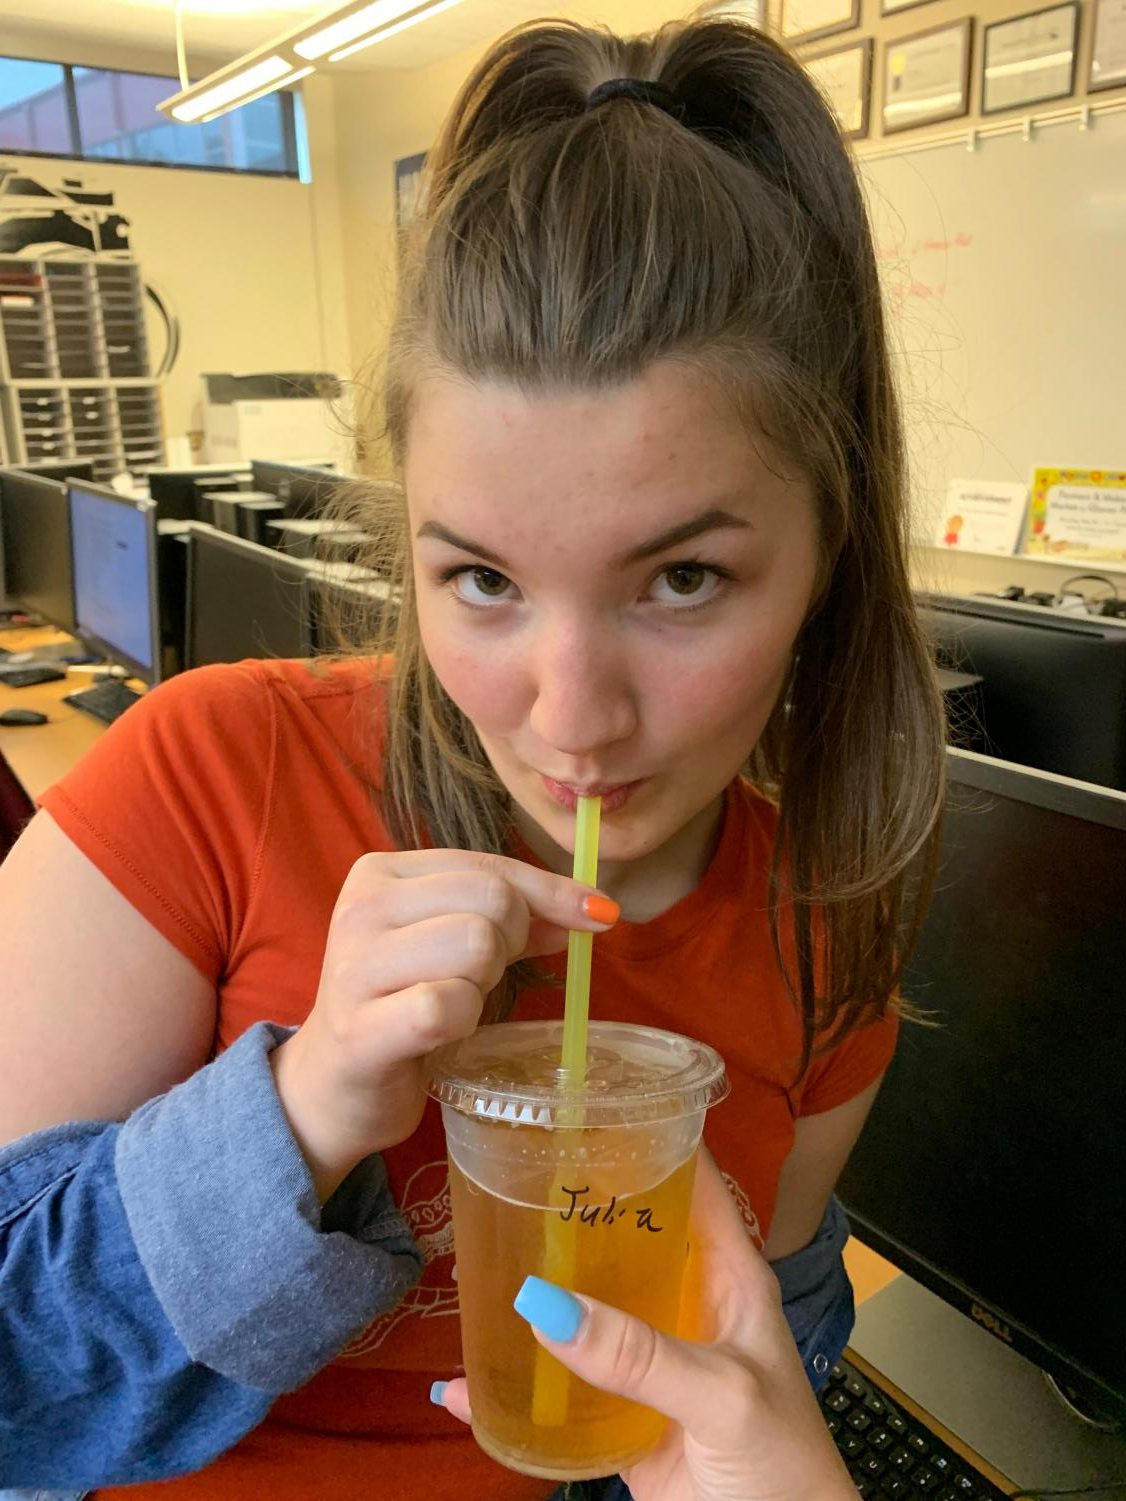 Sipping on a friend's Red Bull Italian Soda, senior Grace McManus stares at the camera.